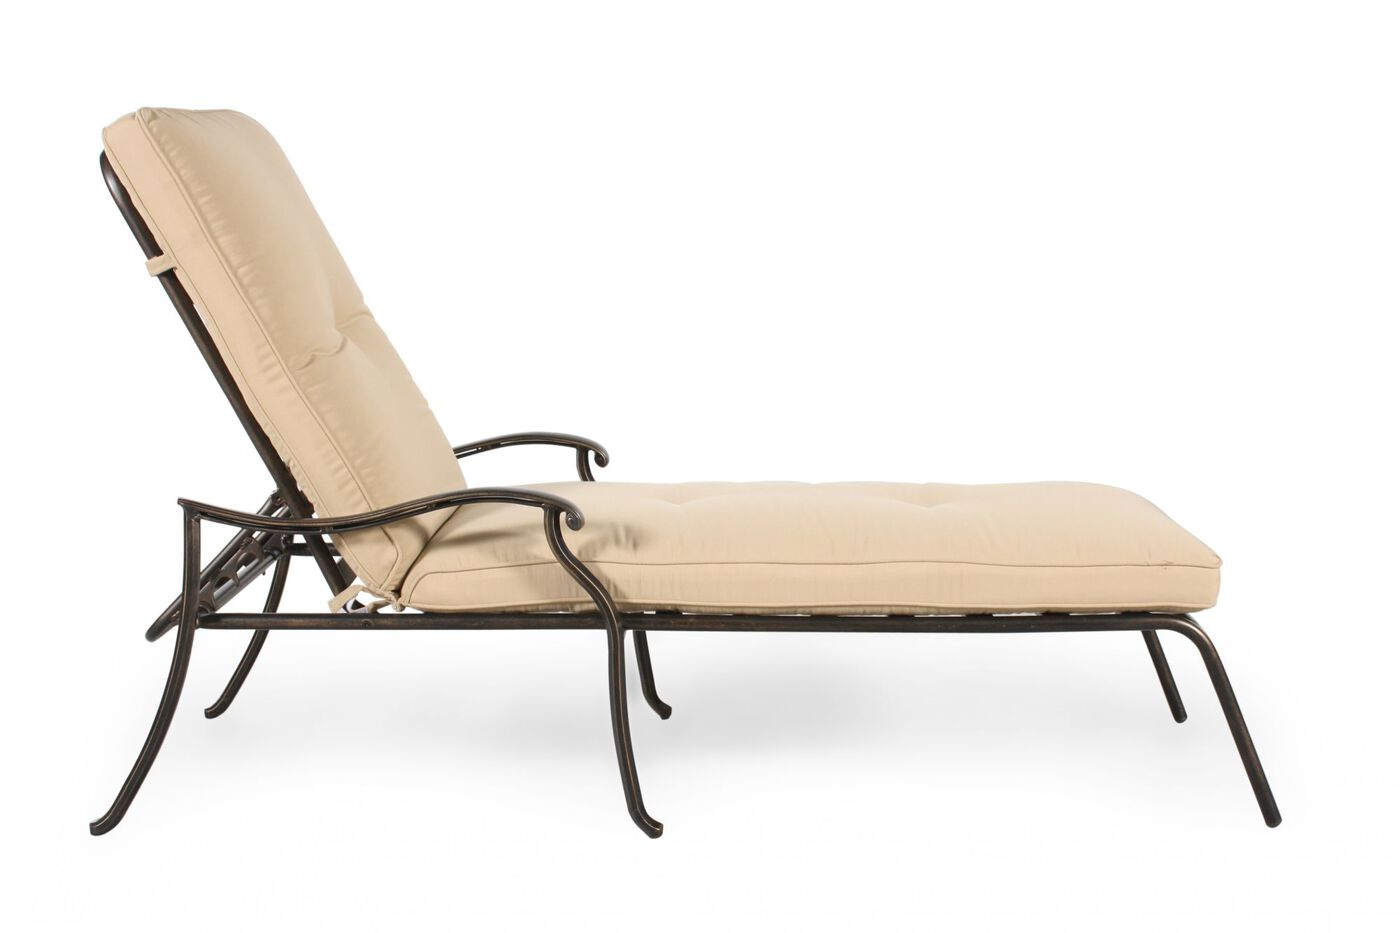 Agio Heritage Select Patio Chaise Lounge : Mathis Brothers Furniture